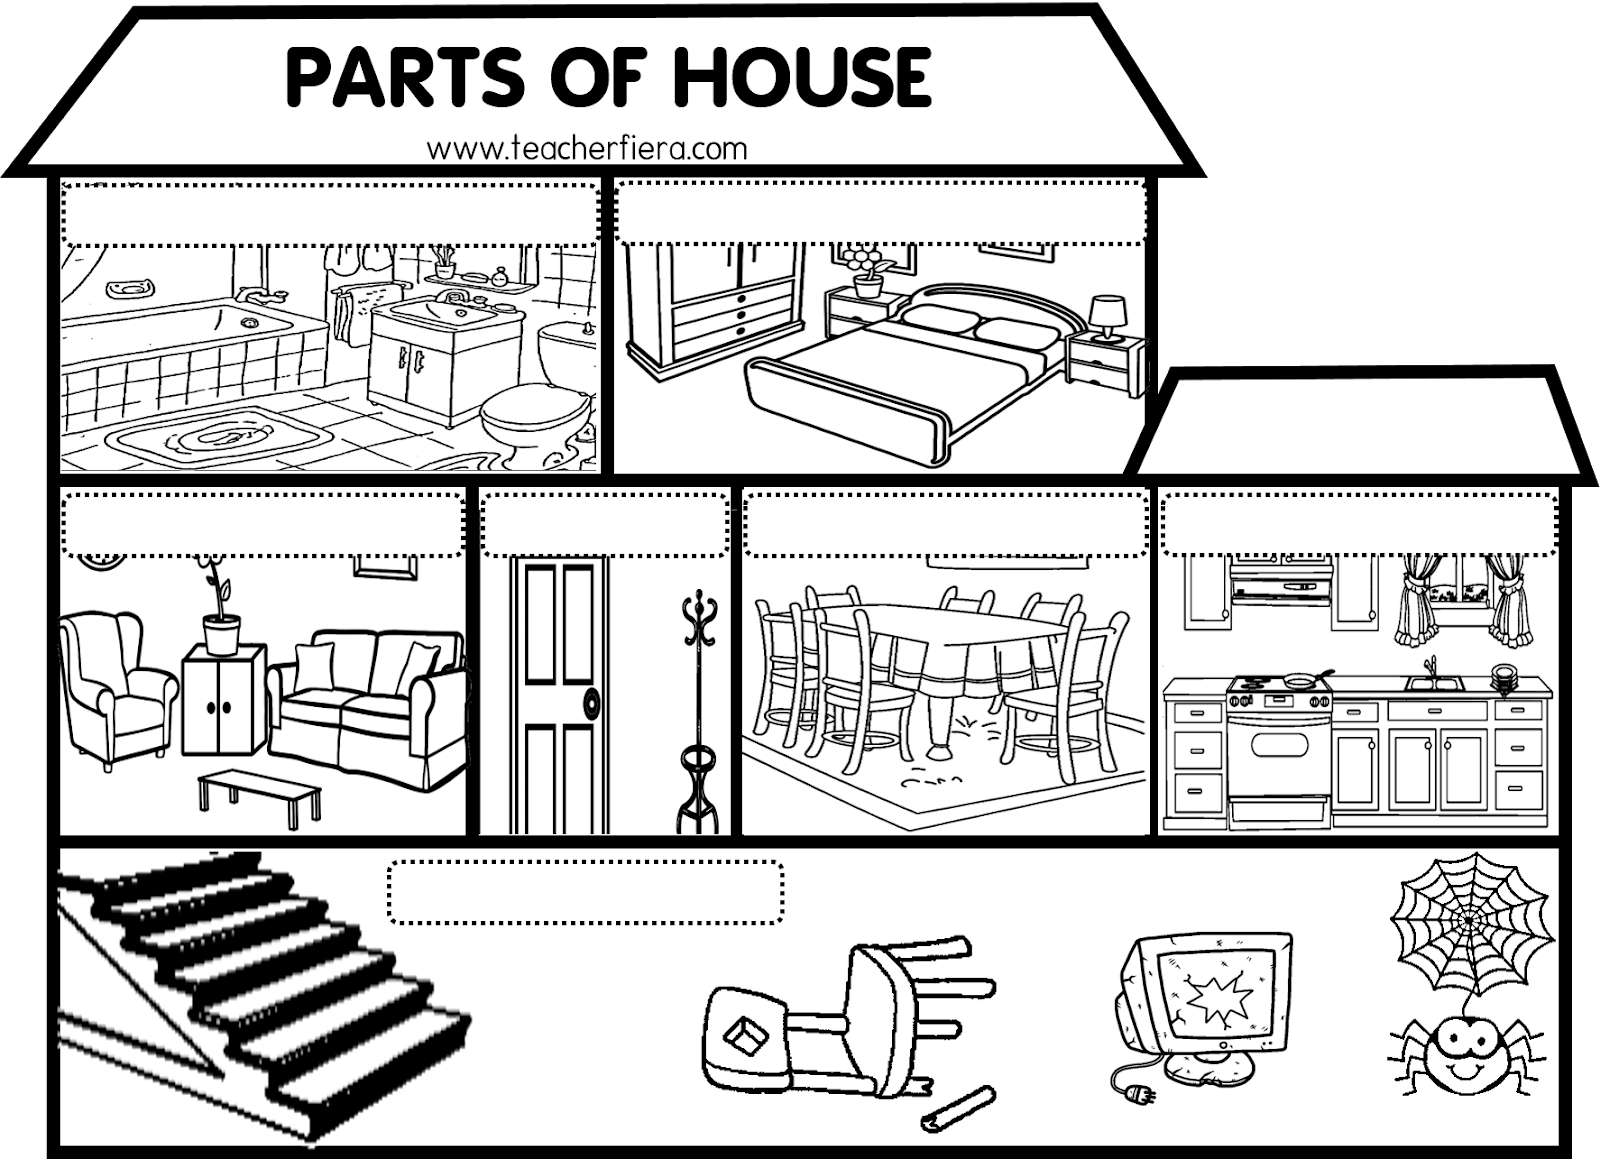 teacherfiera.com: MAKING A GIANT POSTER FOR PARTS OF HOUSE ...